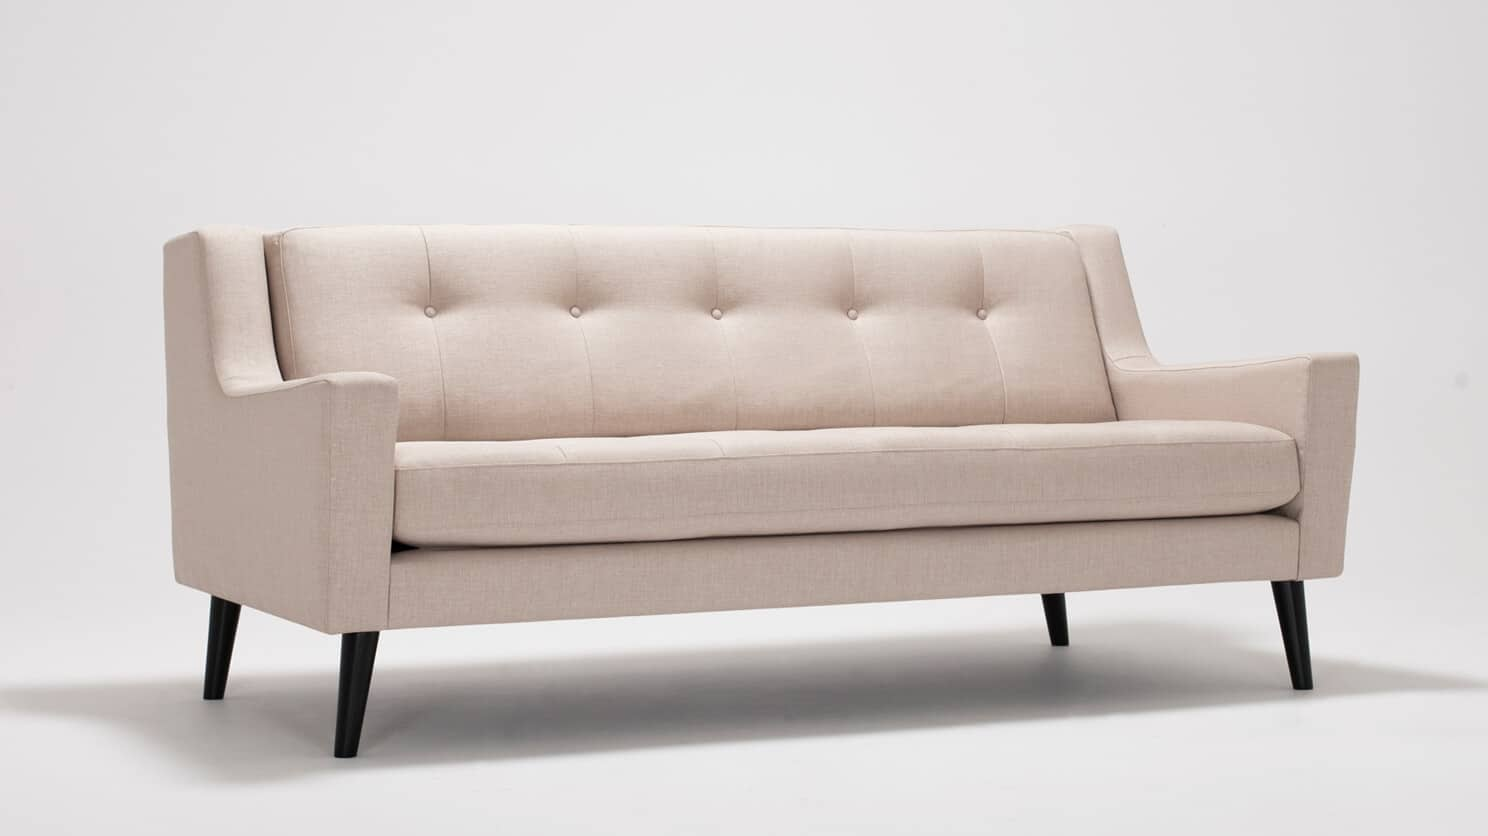 30104 01 02 sofa elise polo oyster front angled view